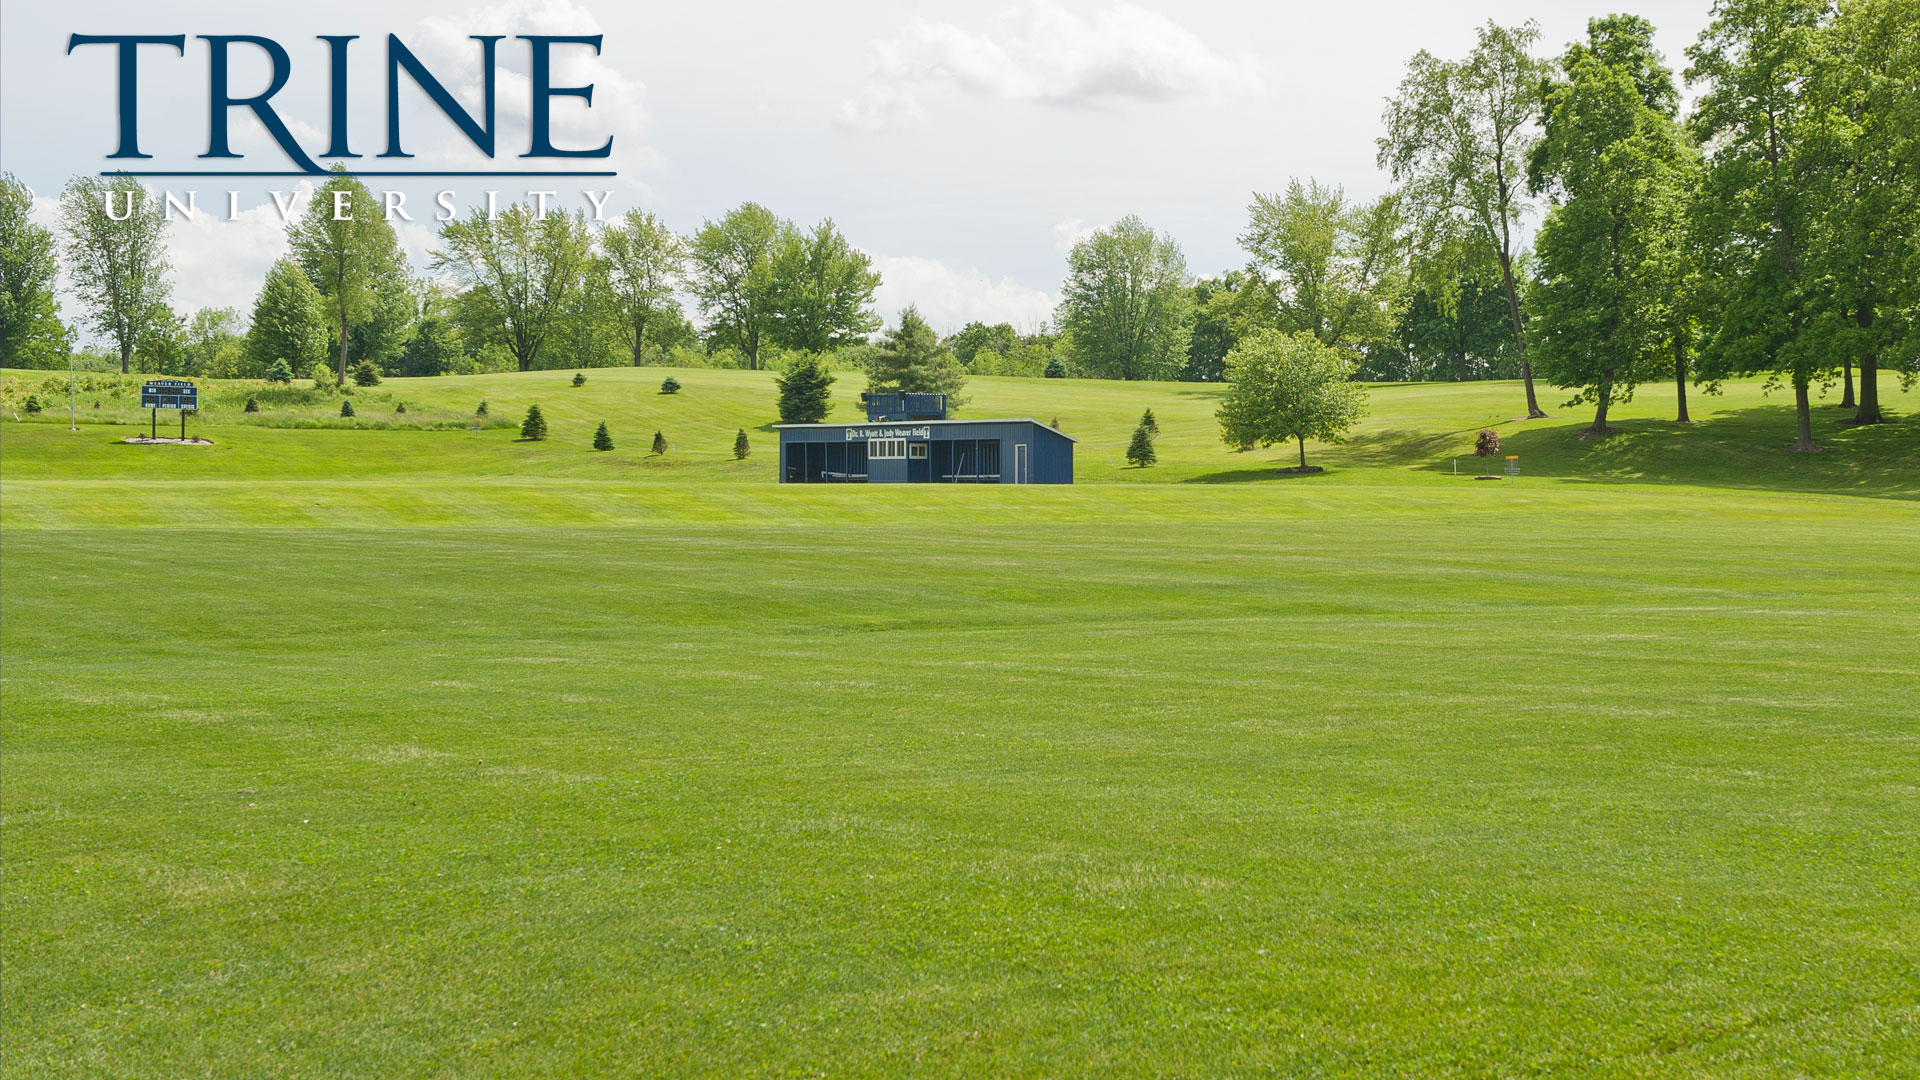 Soccer fields at Trine University